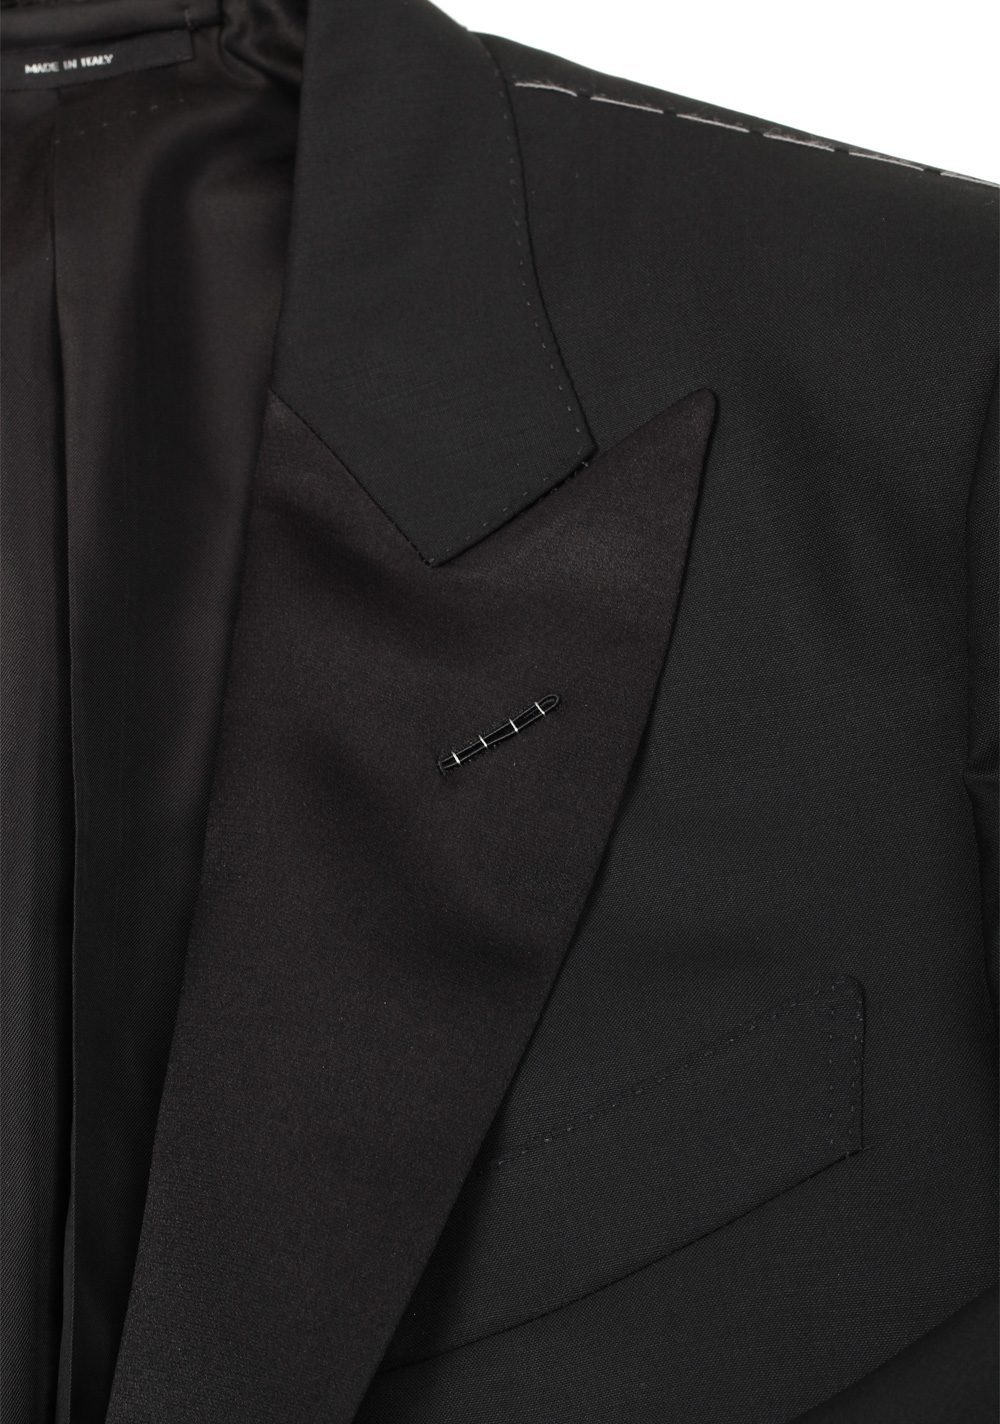 TOM FORD O'Connor Black Shawl Collar Tuxedo Smoking Suit Size 48C / 38S U.S. Fit Y | Costume Limité